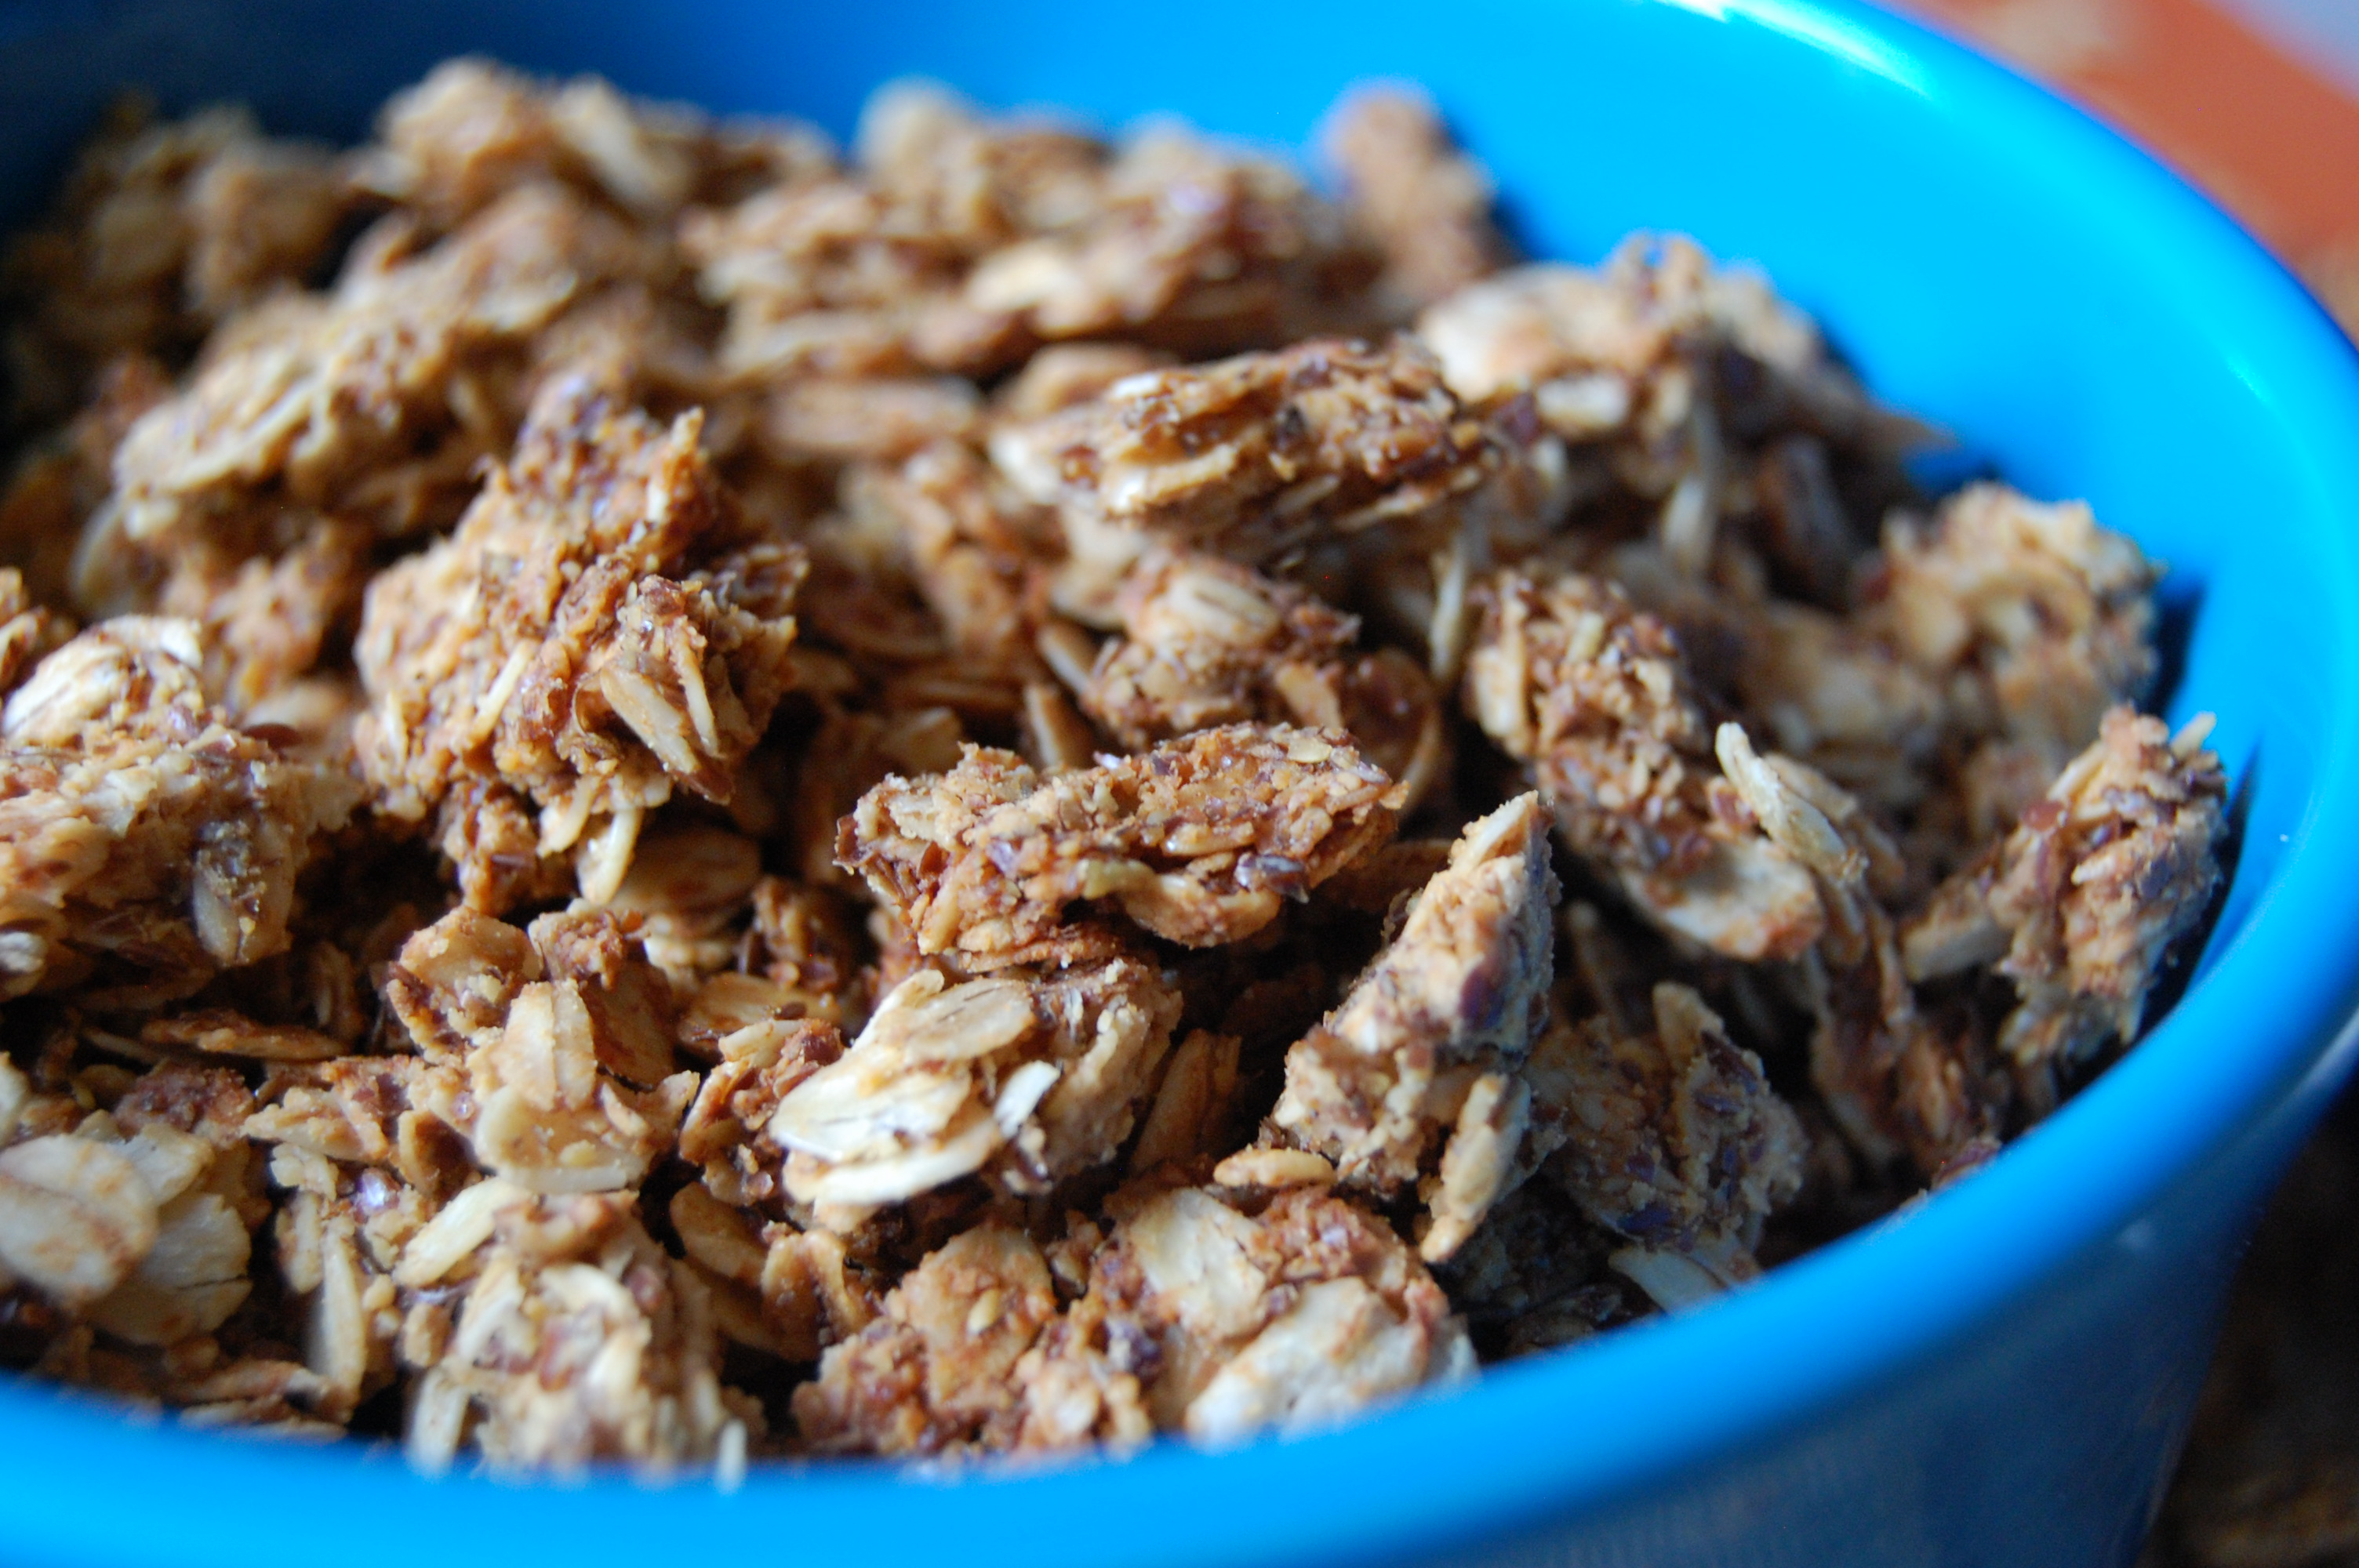 Honey Peanut Butter Granola (makes 2 cups)